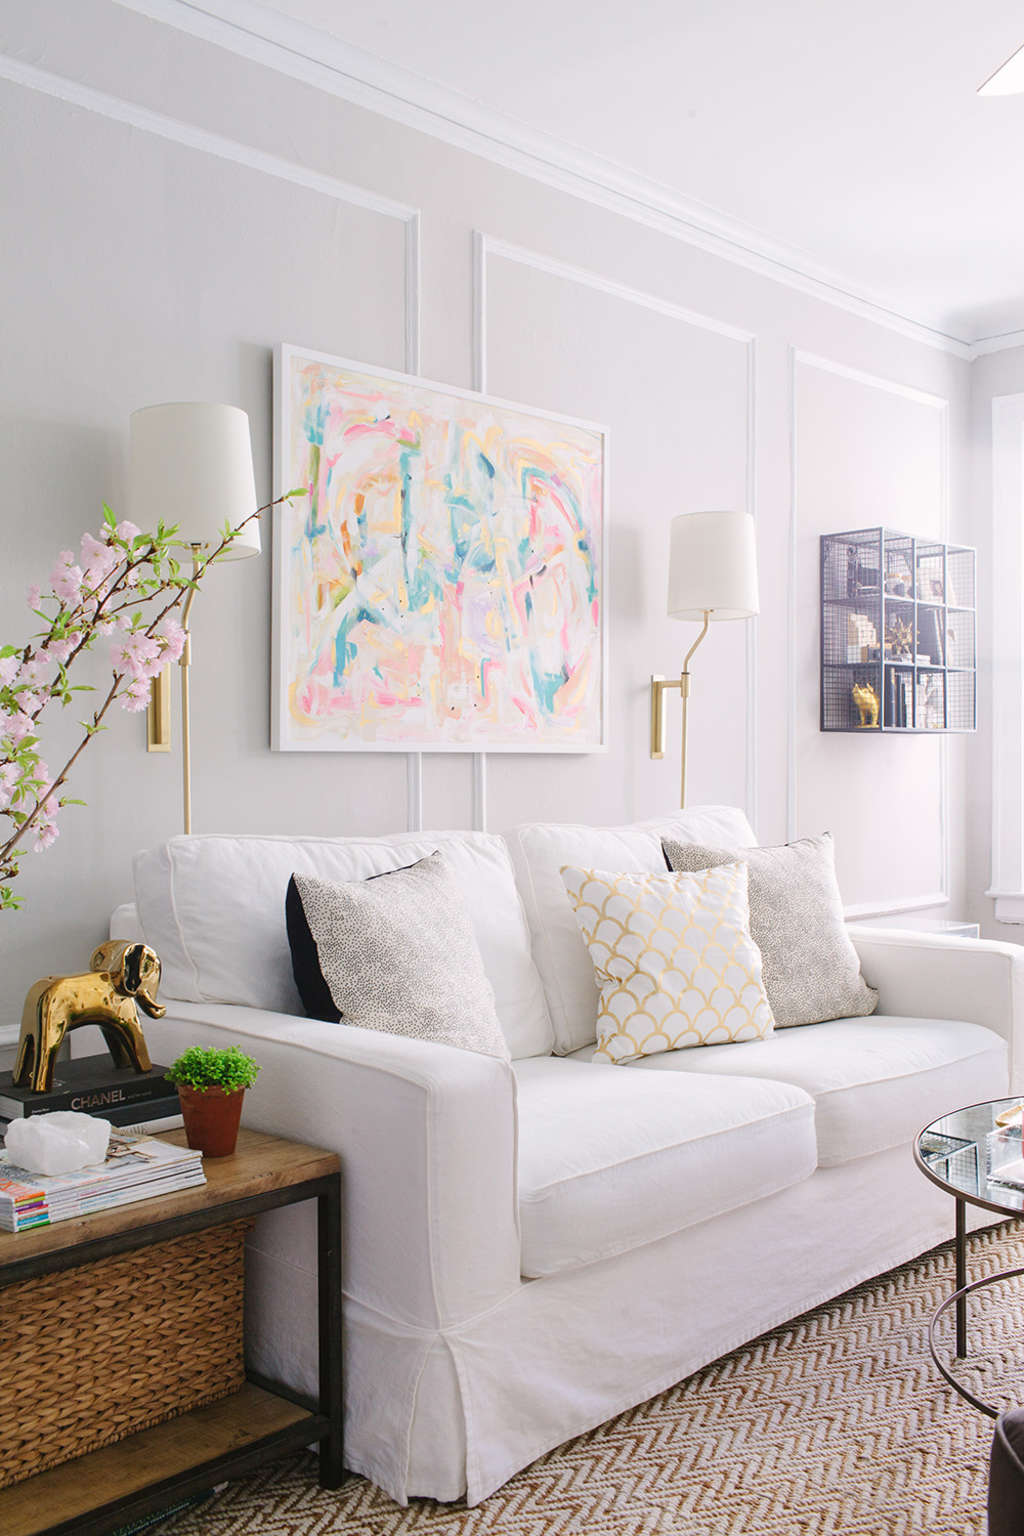 House Tour: A 750 Square Foot Classic Chicago Walk-Up